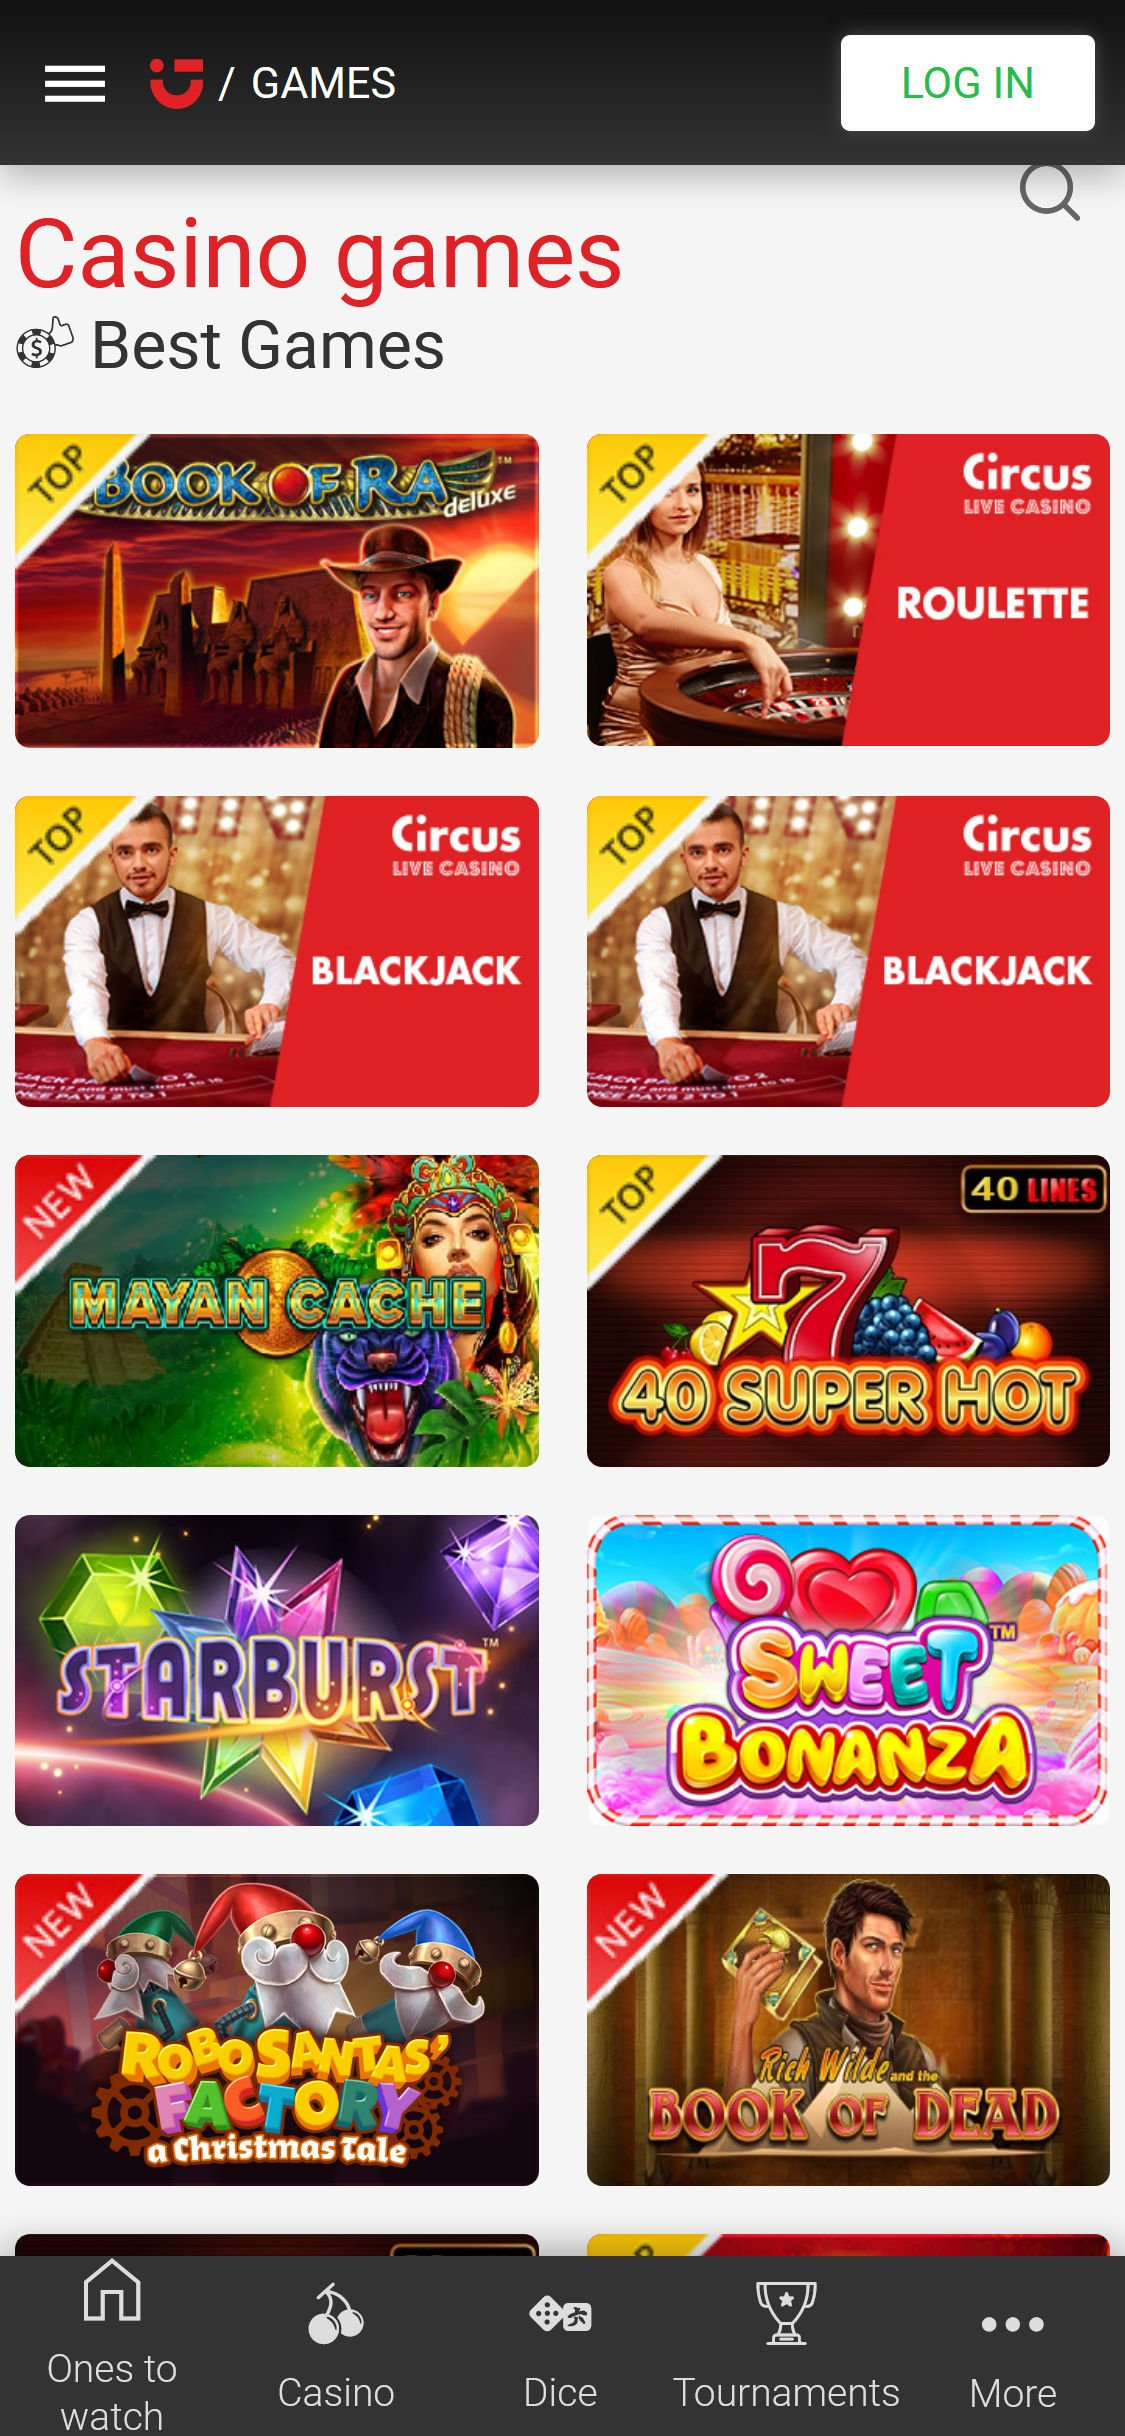 Circus free spins 125191